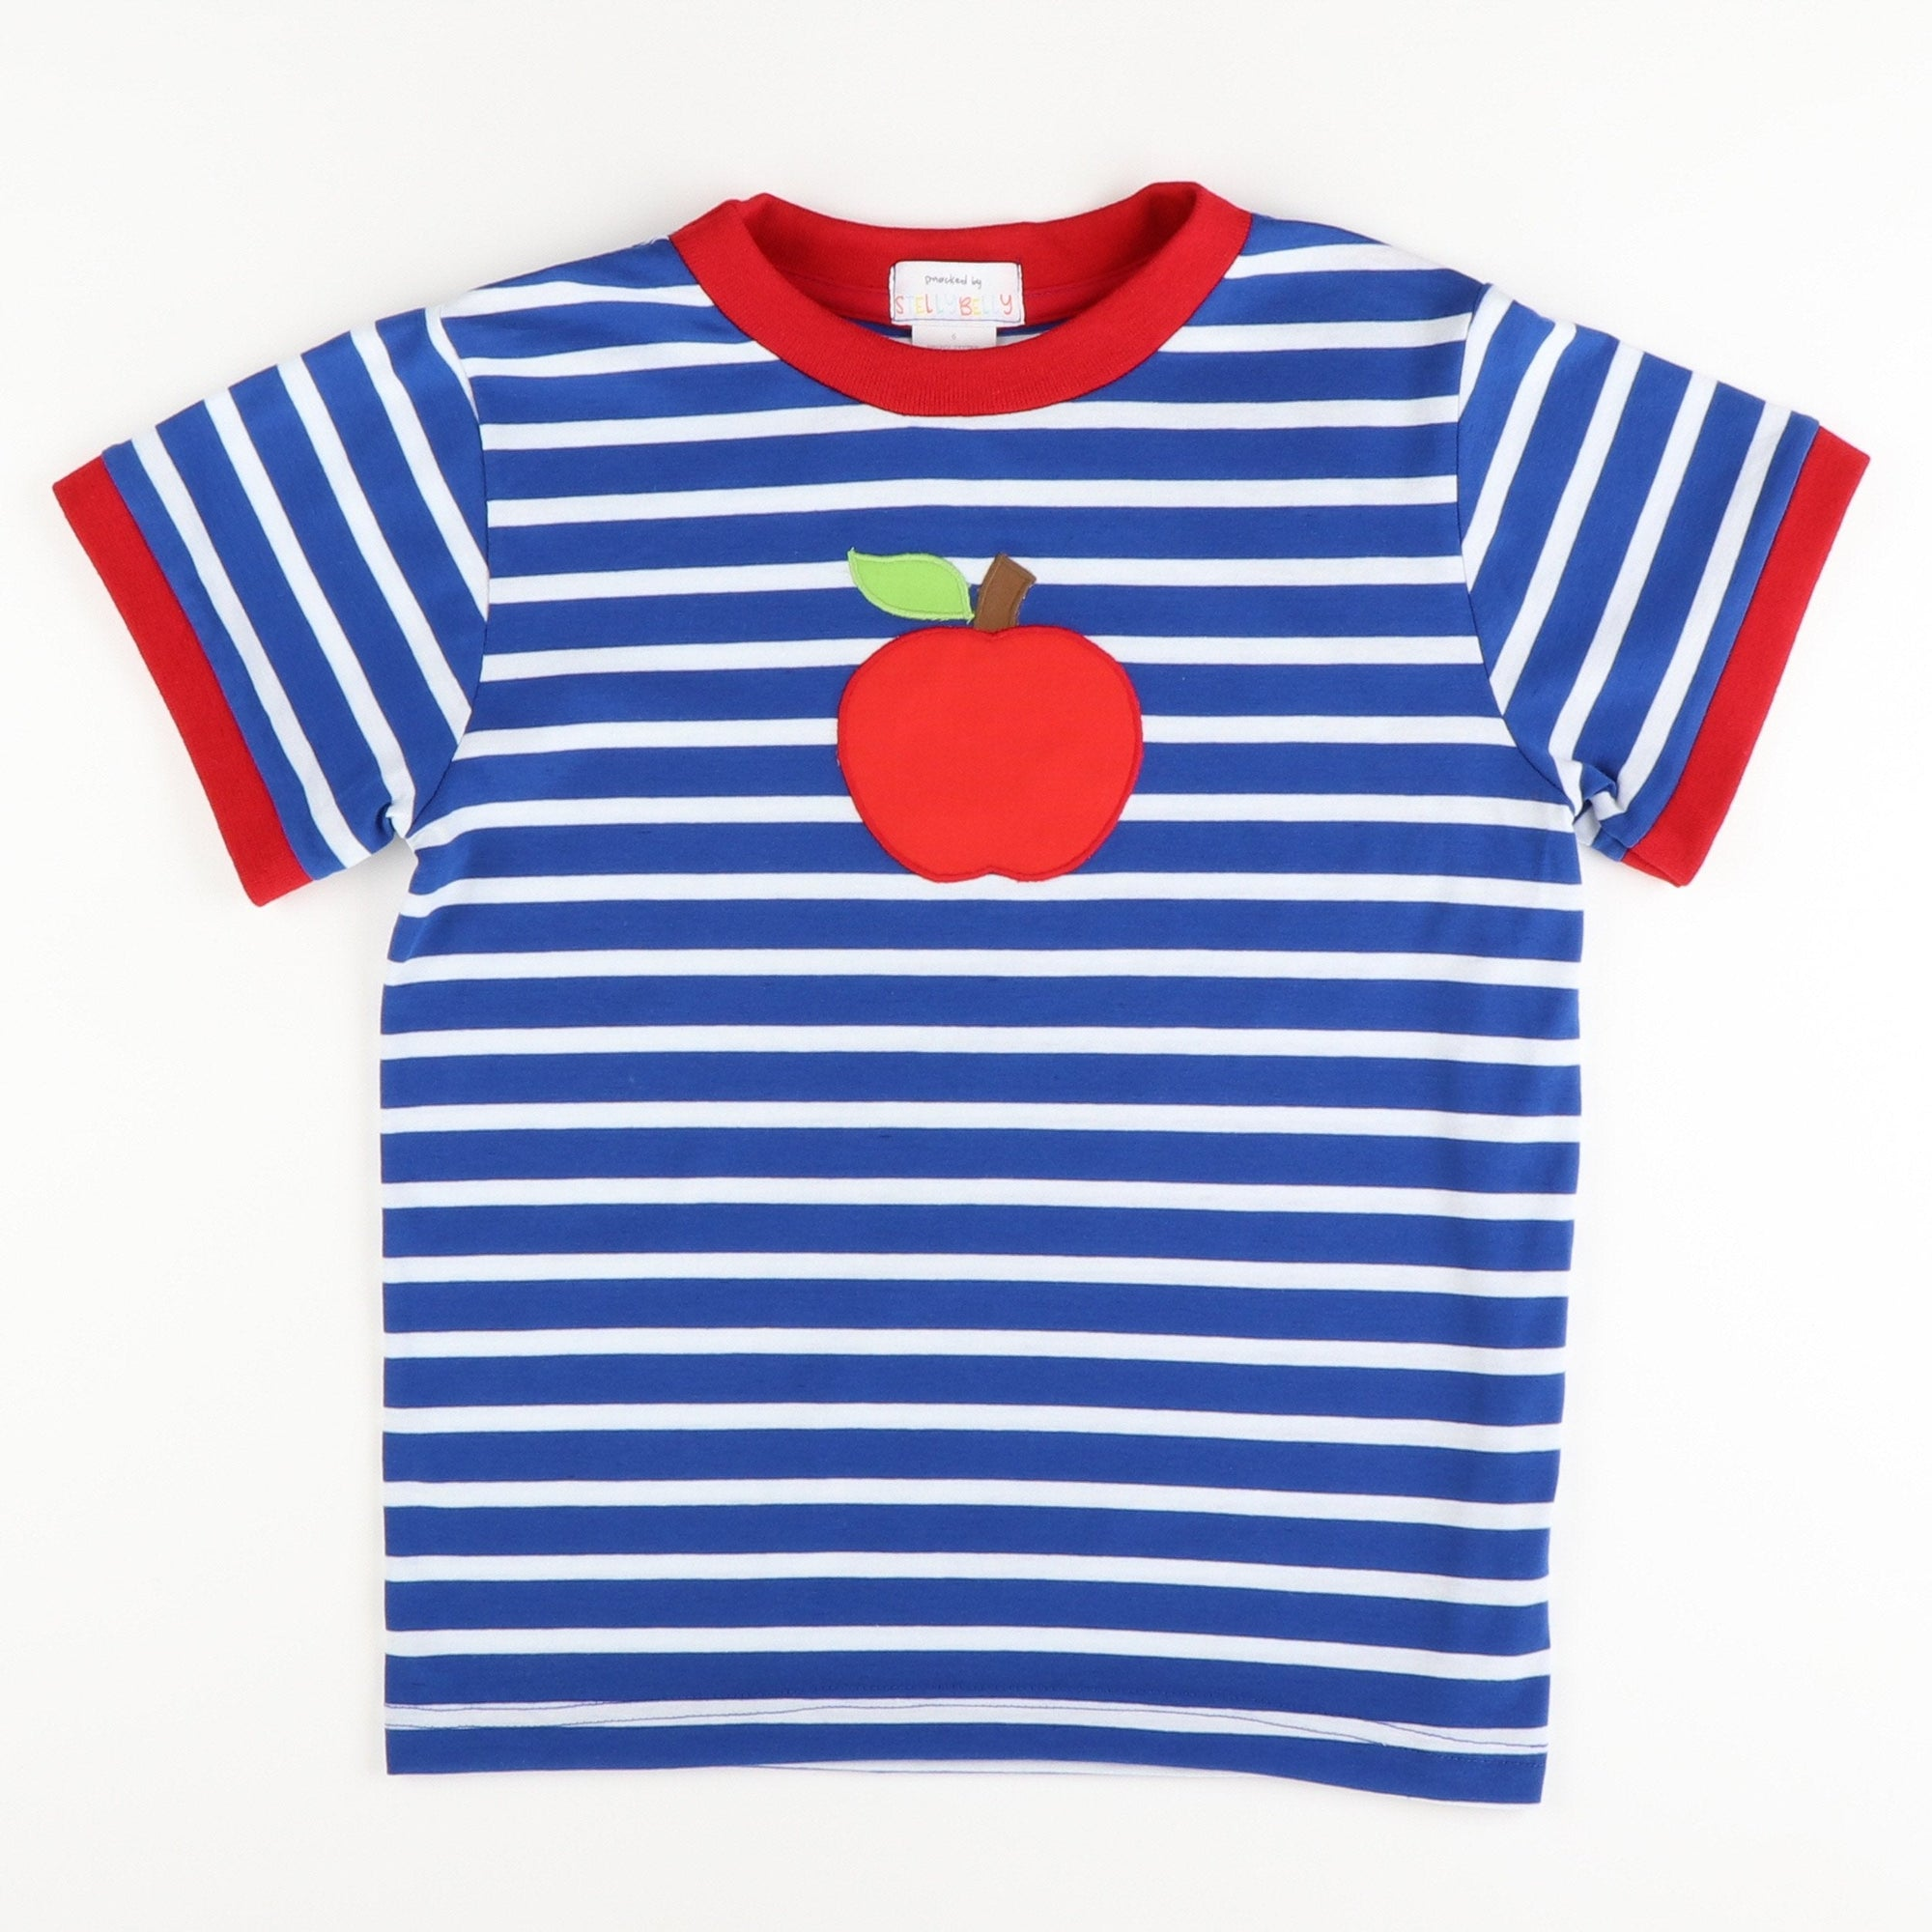 Appliquéd Apple Short Sleeve Shirt - Royal Blue Stripe Knit - Stellybelly